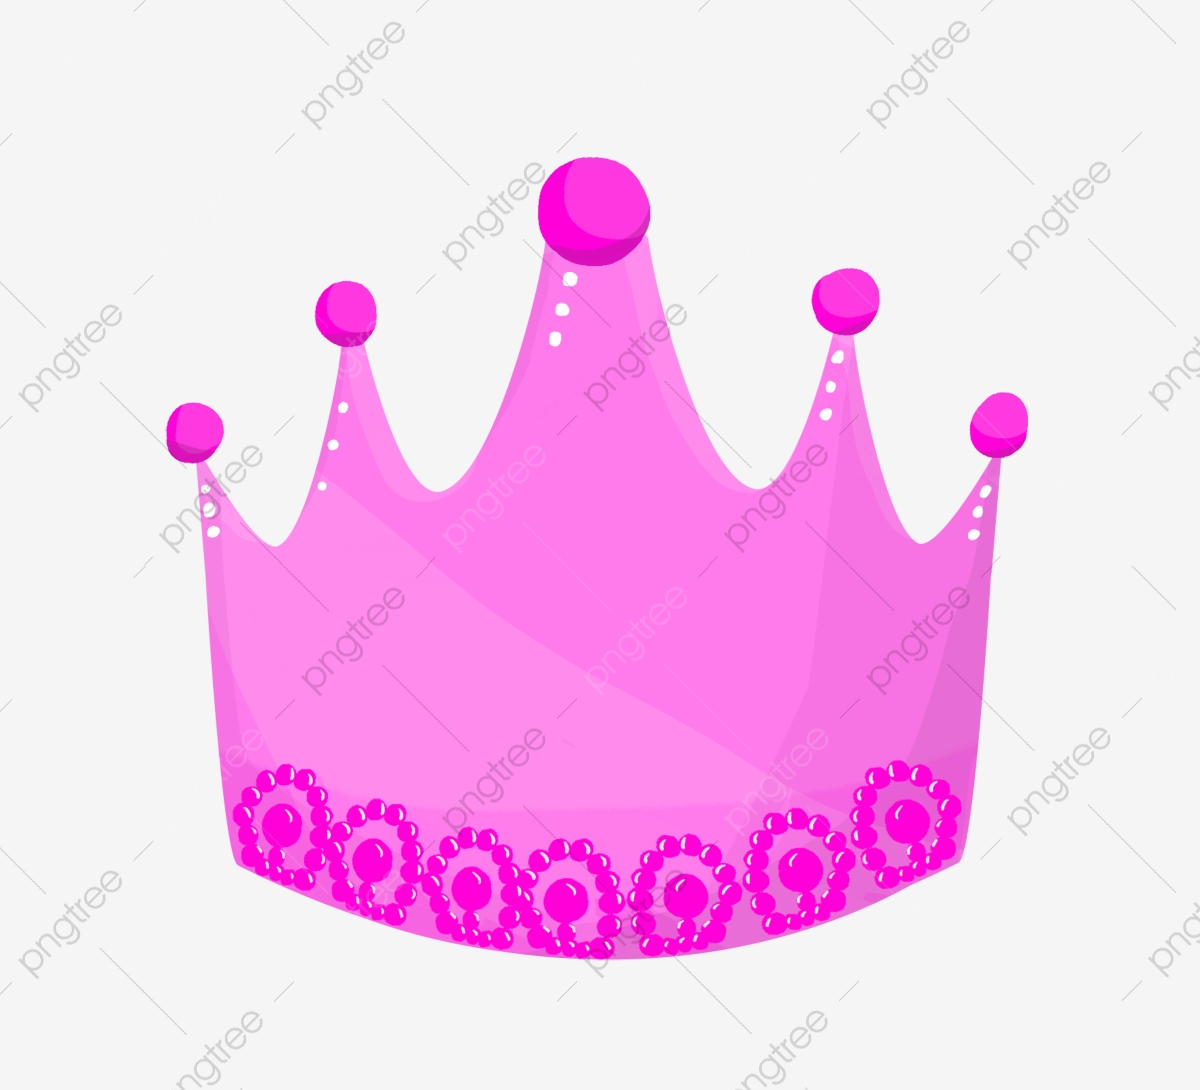 Pink Crown Crown Illustration Crown Decoration Birthday Crown Crown Clipart Hand Painted Crown Cartoon Crown Png Transparent Clipart Image And Psd File For Free Download Free cliparts that you can download to you computer and use in your designs. https pngtree com freepng pink crown crown illustration crown decoration birthday crown 3829680 html